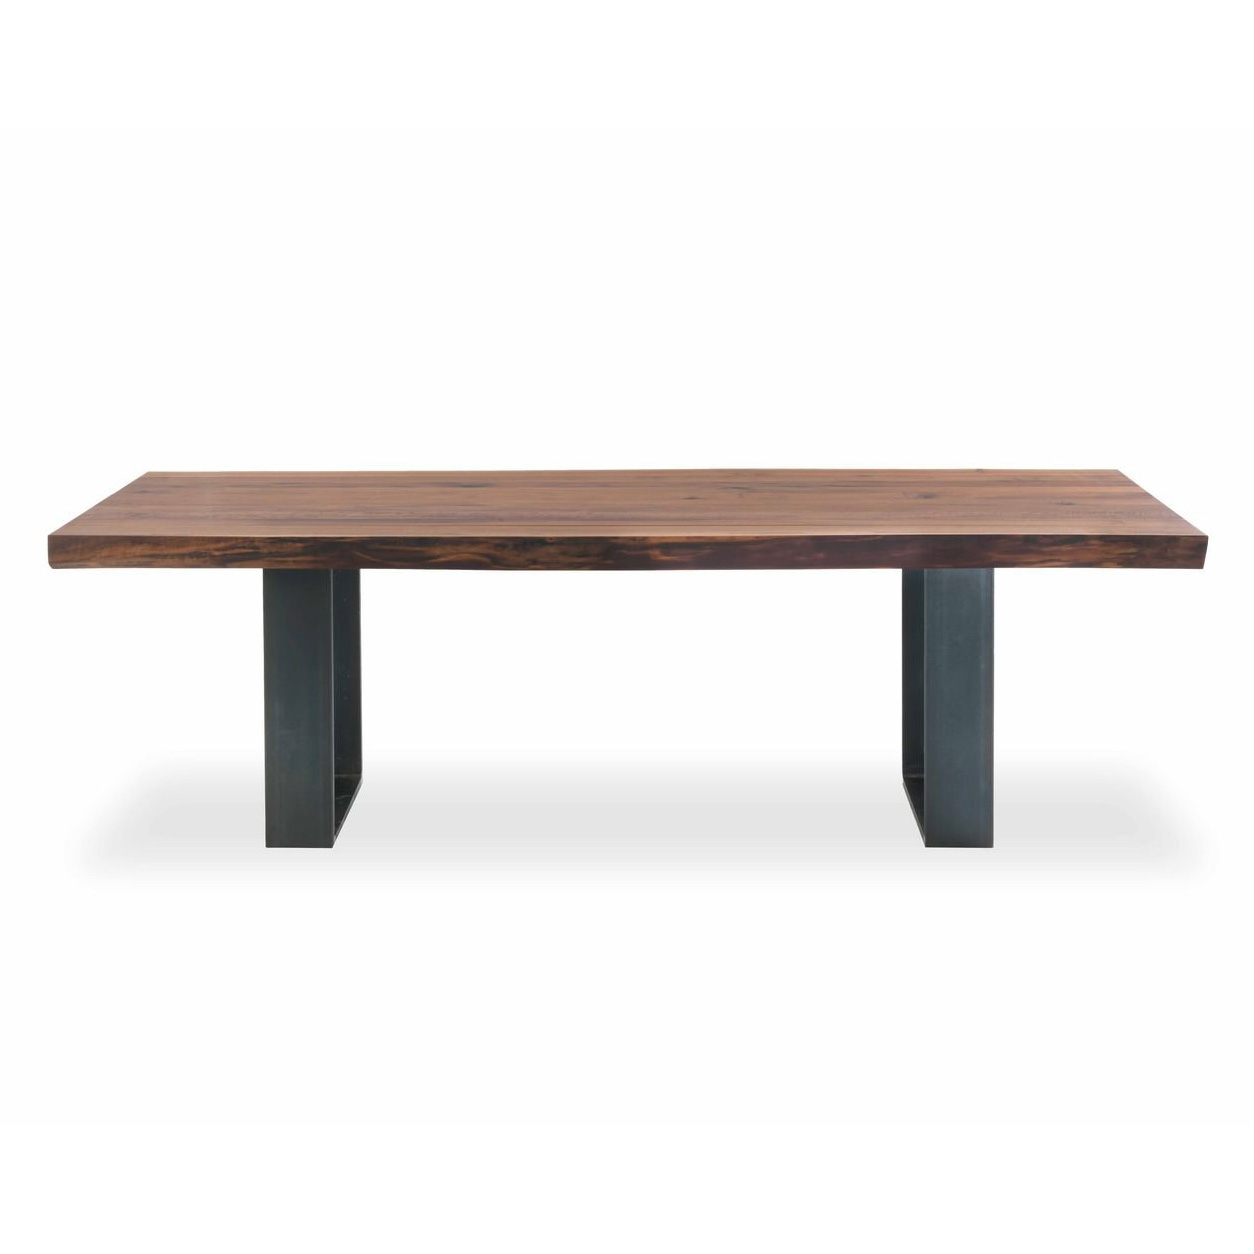 Woodstock-Newton Base dining table from Riva 1920